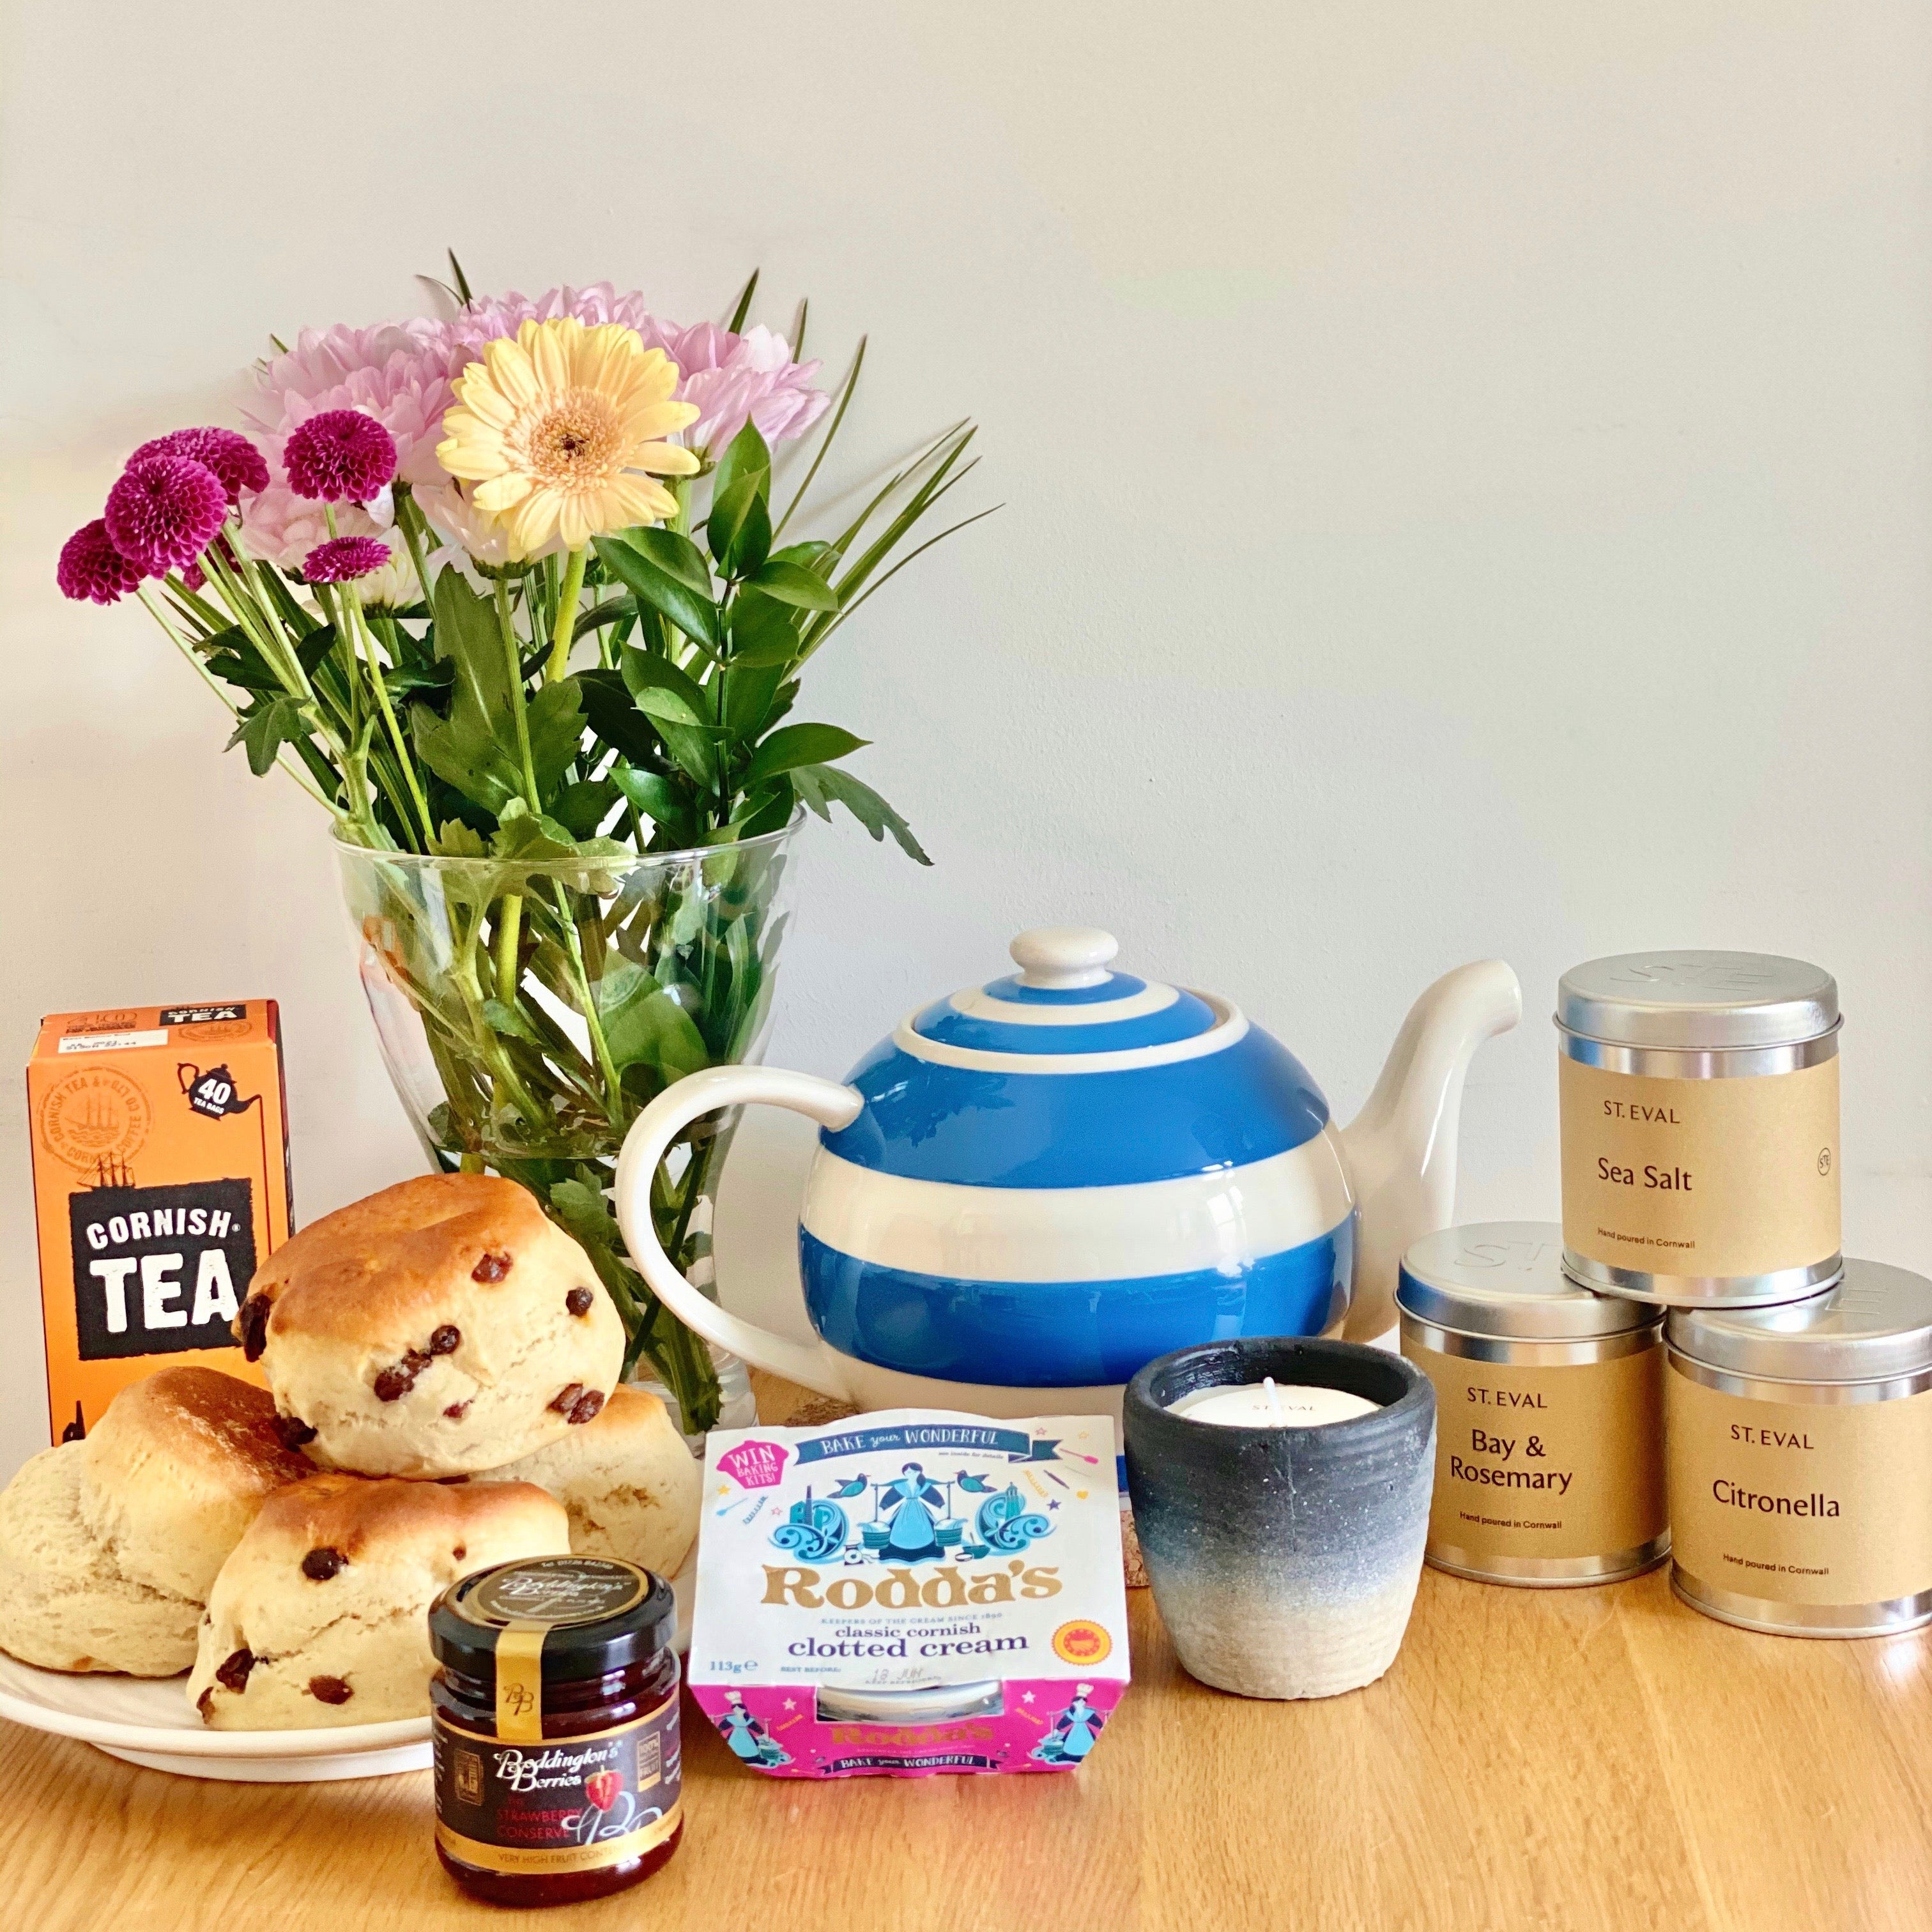 St. Eval Cream Tea Giveaway